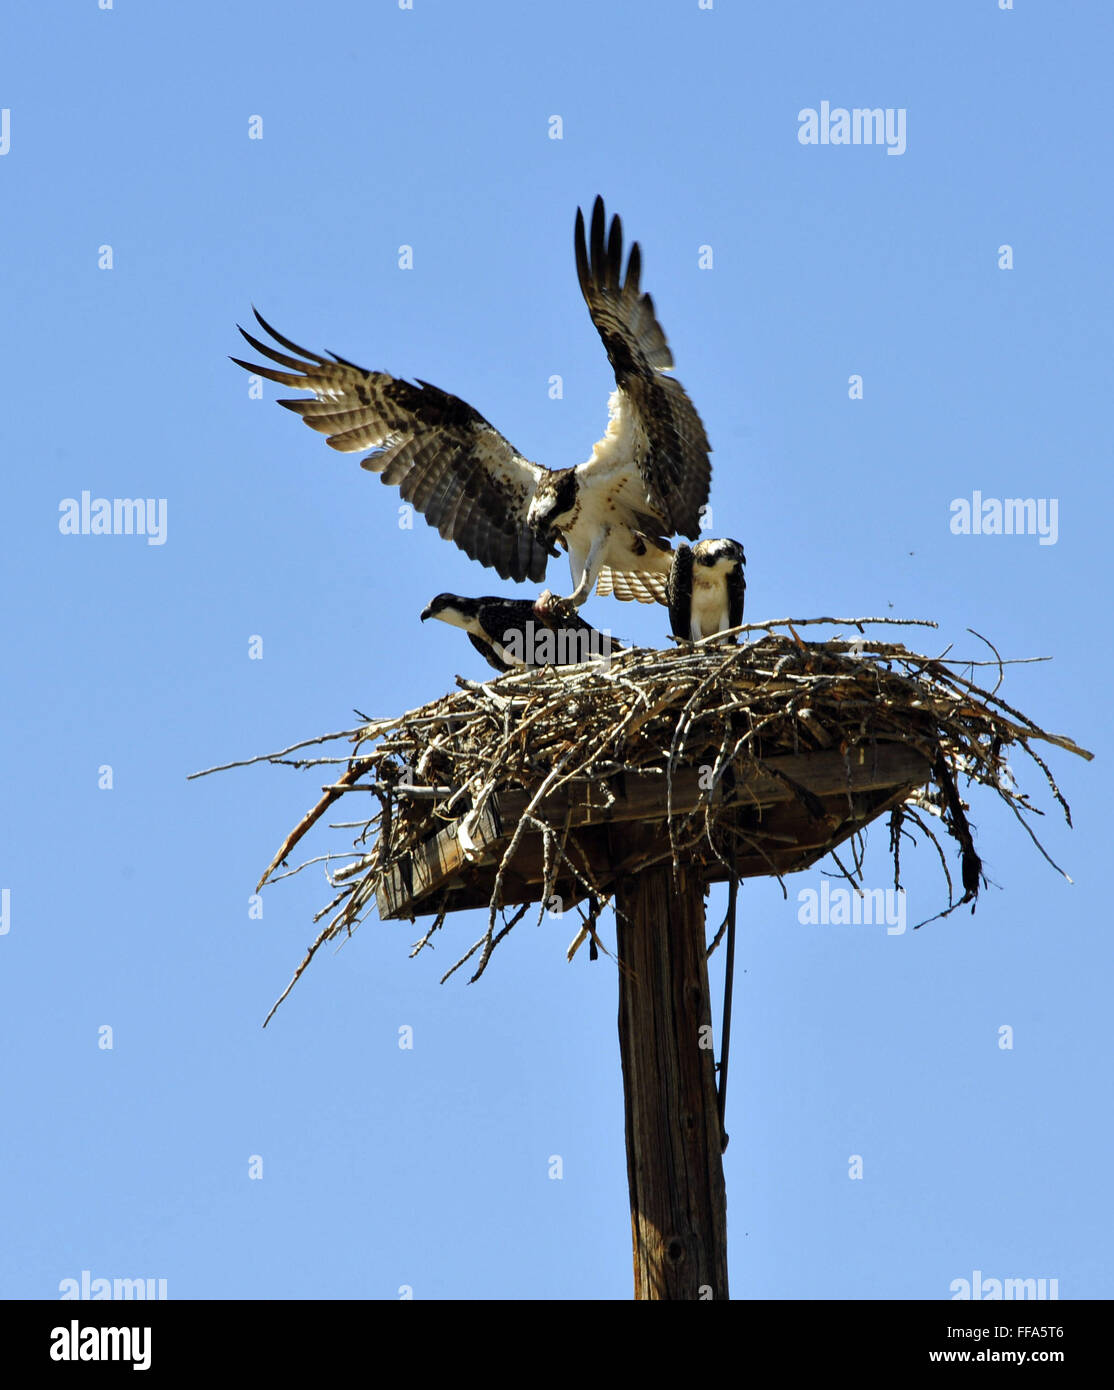 Nesting Osprey with two fledglings.  The parent is bringing a fish for them to feed. Nest is near the  Salmon River - Stock Image